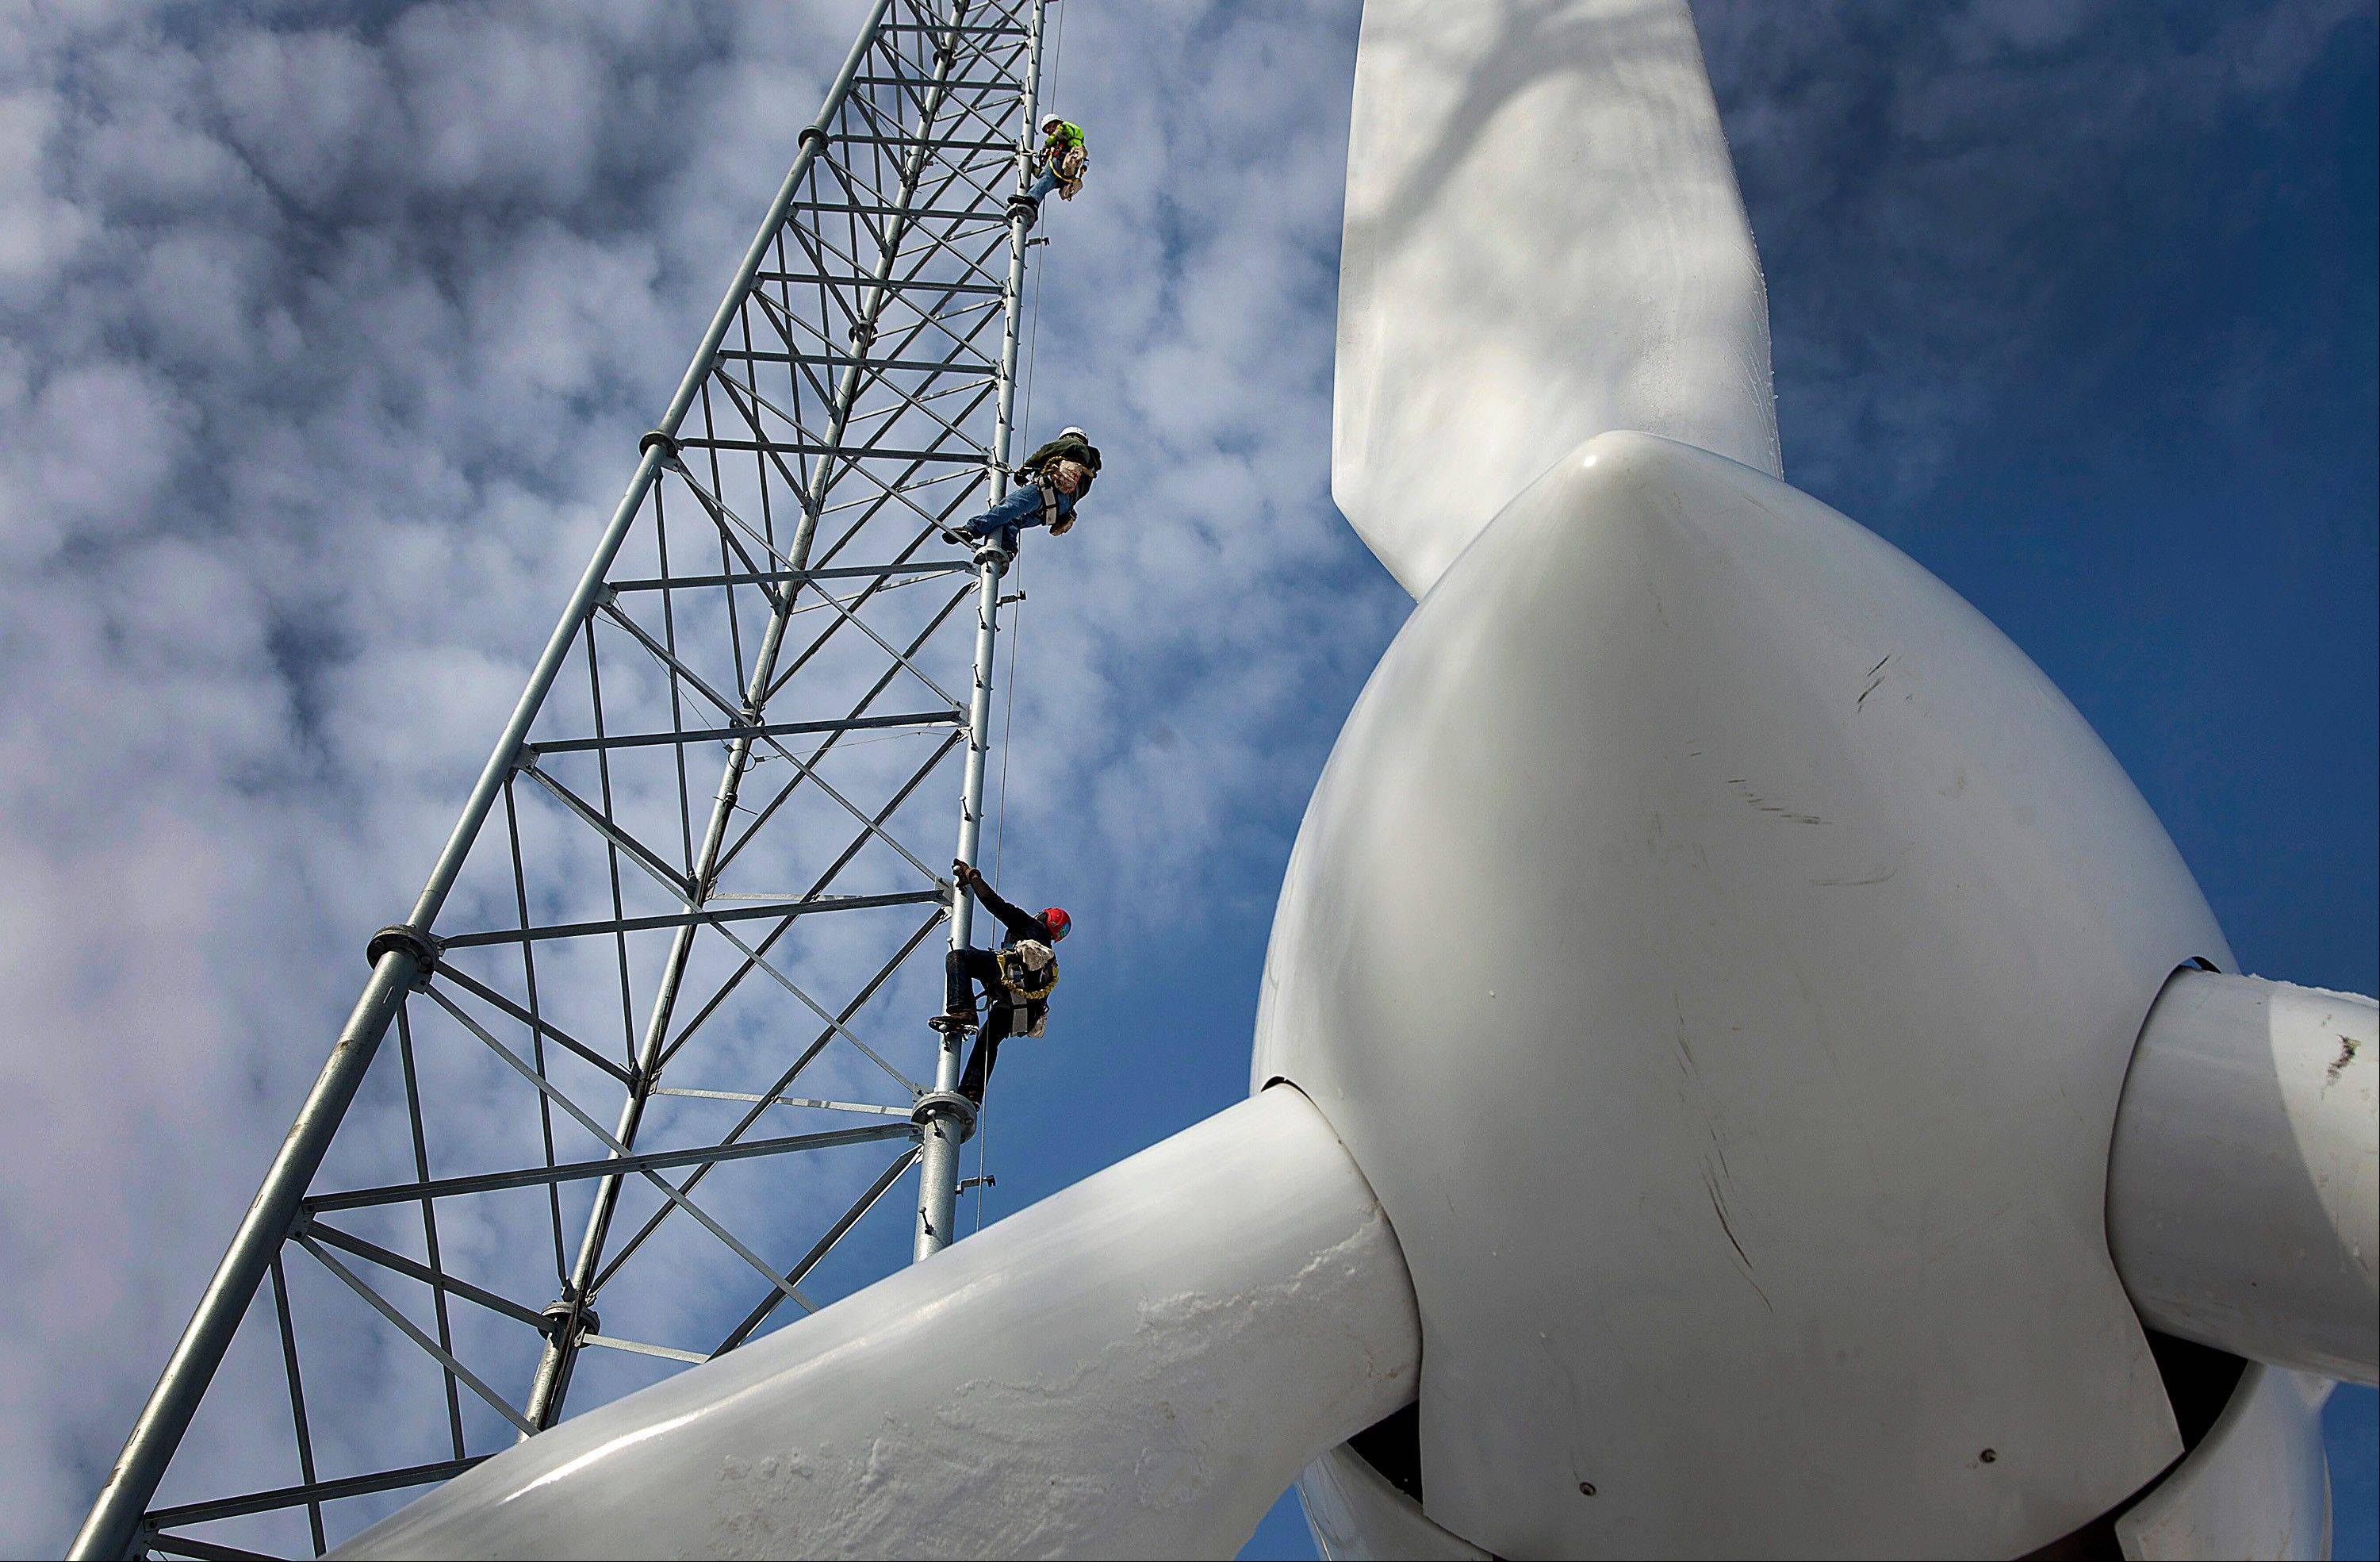 Dietz Brothers Inc. tower men Jonathan Thompson, from bottom, Ben Christianson, and Jake Bengtson climb a Polaris Industries Inc. wind turbine installed by Renewable Energy SD in Elgin, Minnesota, U.S., on Wednesday, Feb. 15, 2012. The U.S. wind and solar energy industries need an extension of production tax credits, which are scheduled to expire at the end of the year, Energy Secretary Steven Chu said.